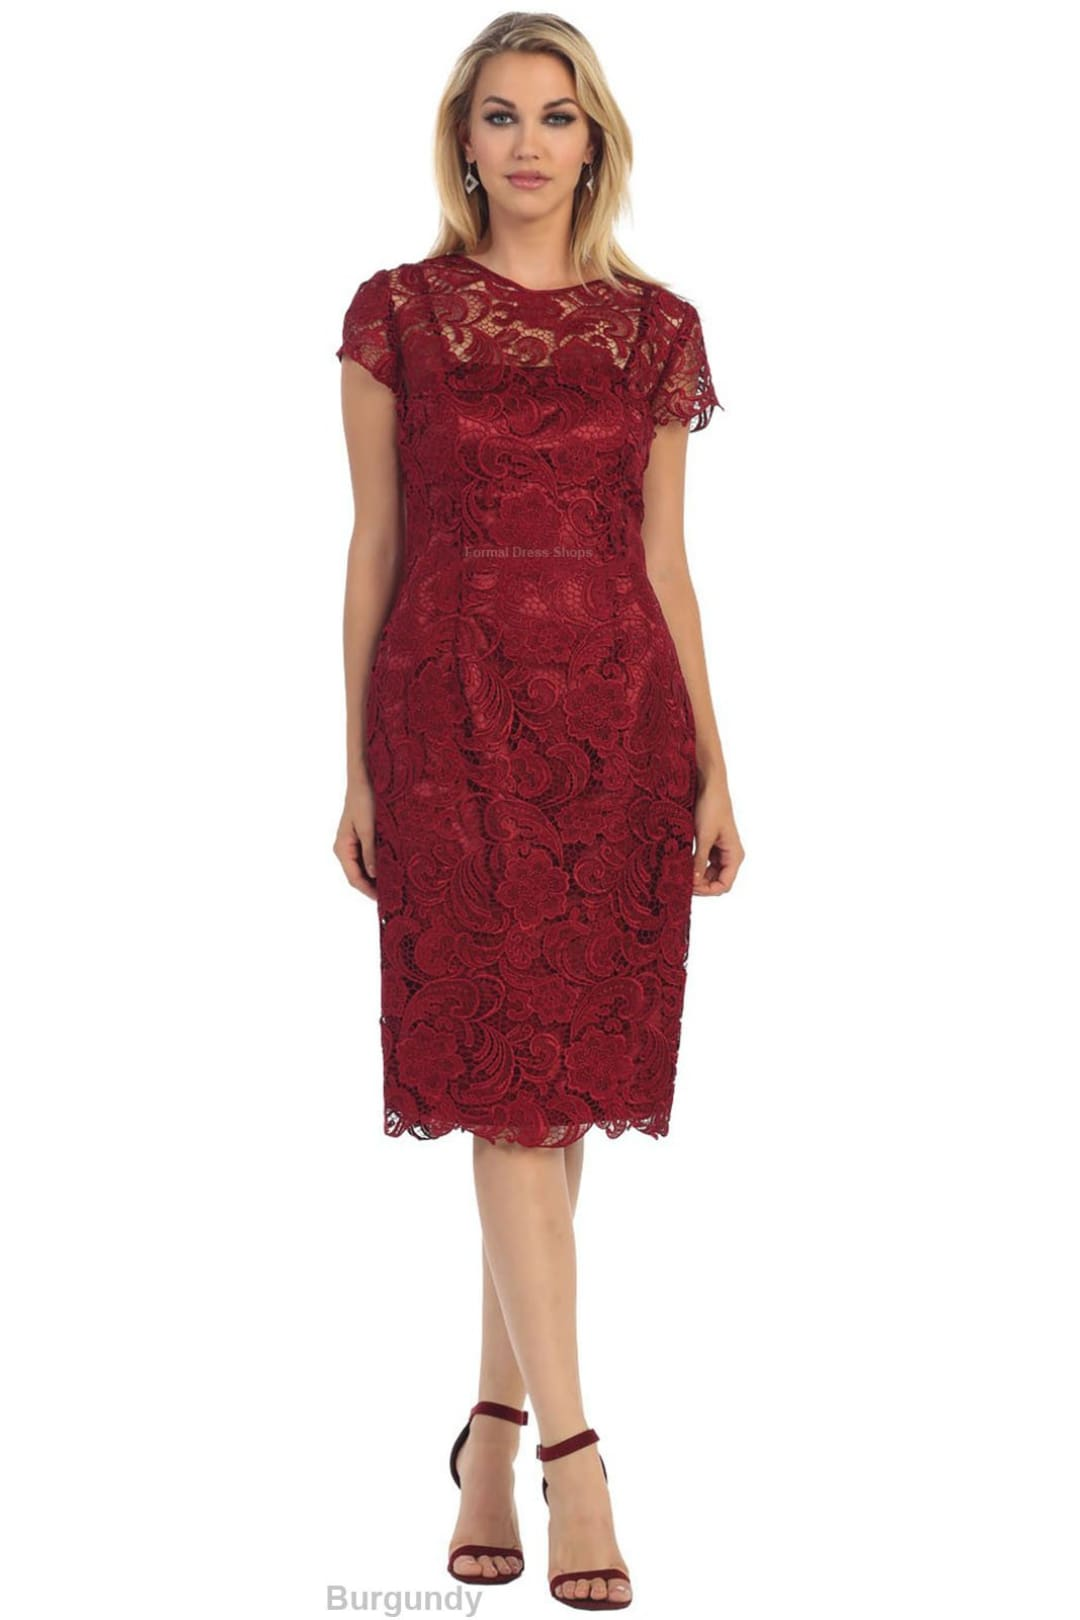 Classy Short Mother of the Groom Dress - Burgundy / 4XL